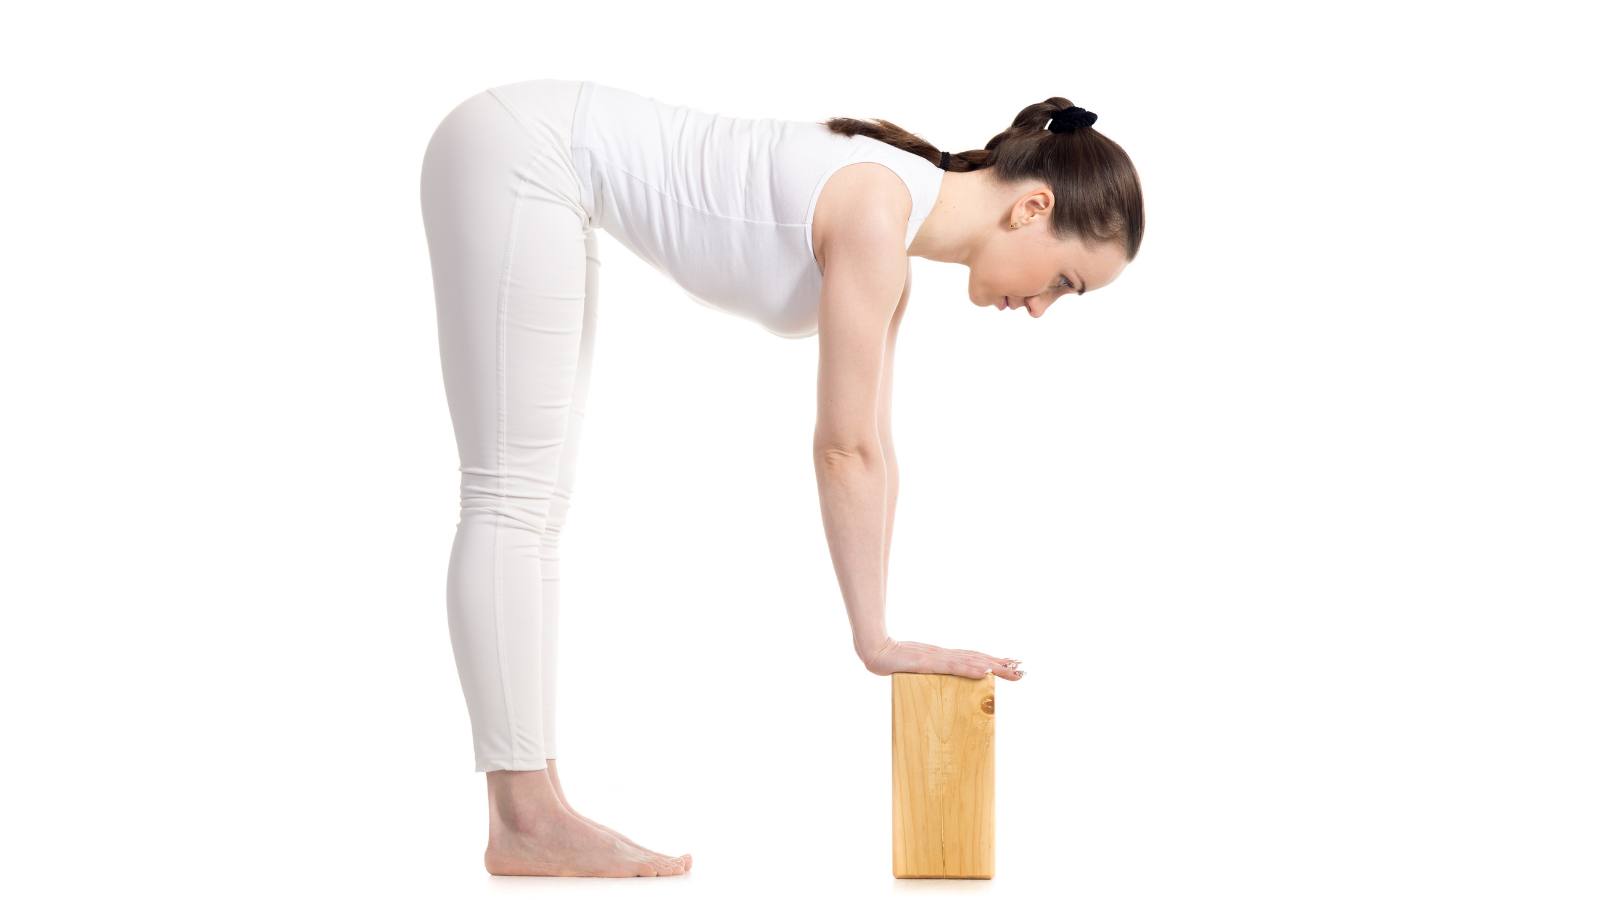 Yoga practitioner experiencing the benefits of safely practicing a modified version of Standing Forward Bend Pose (Sanskrit name: Uttanasana)